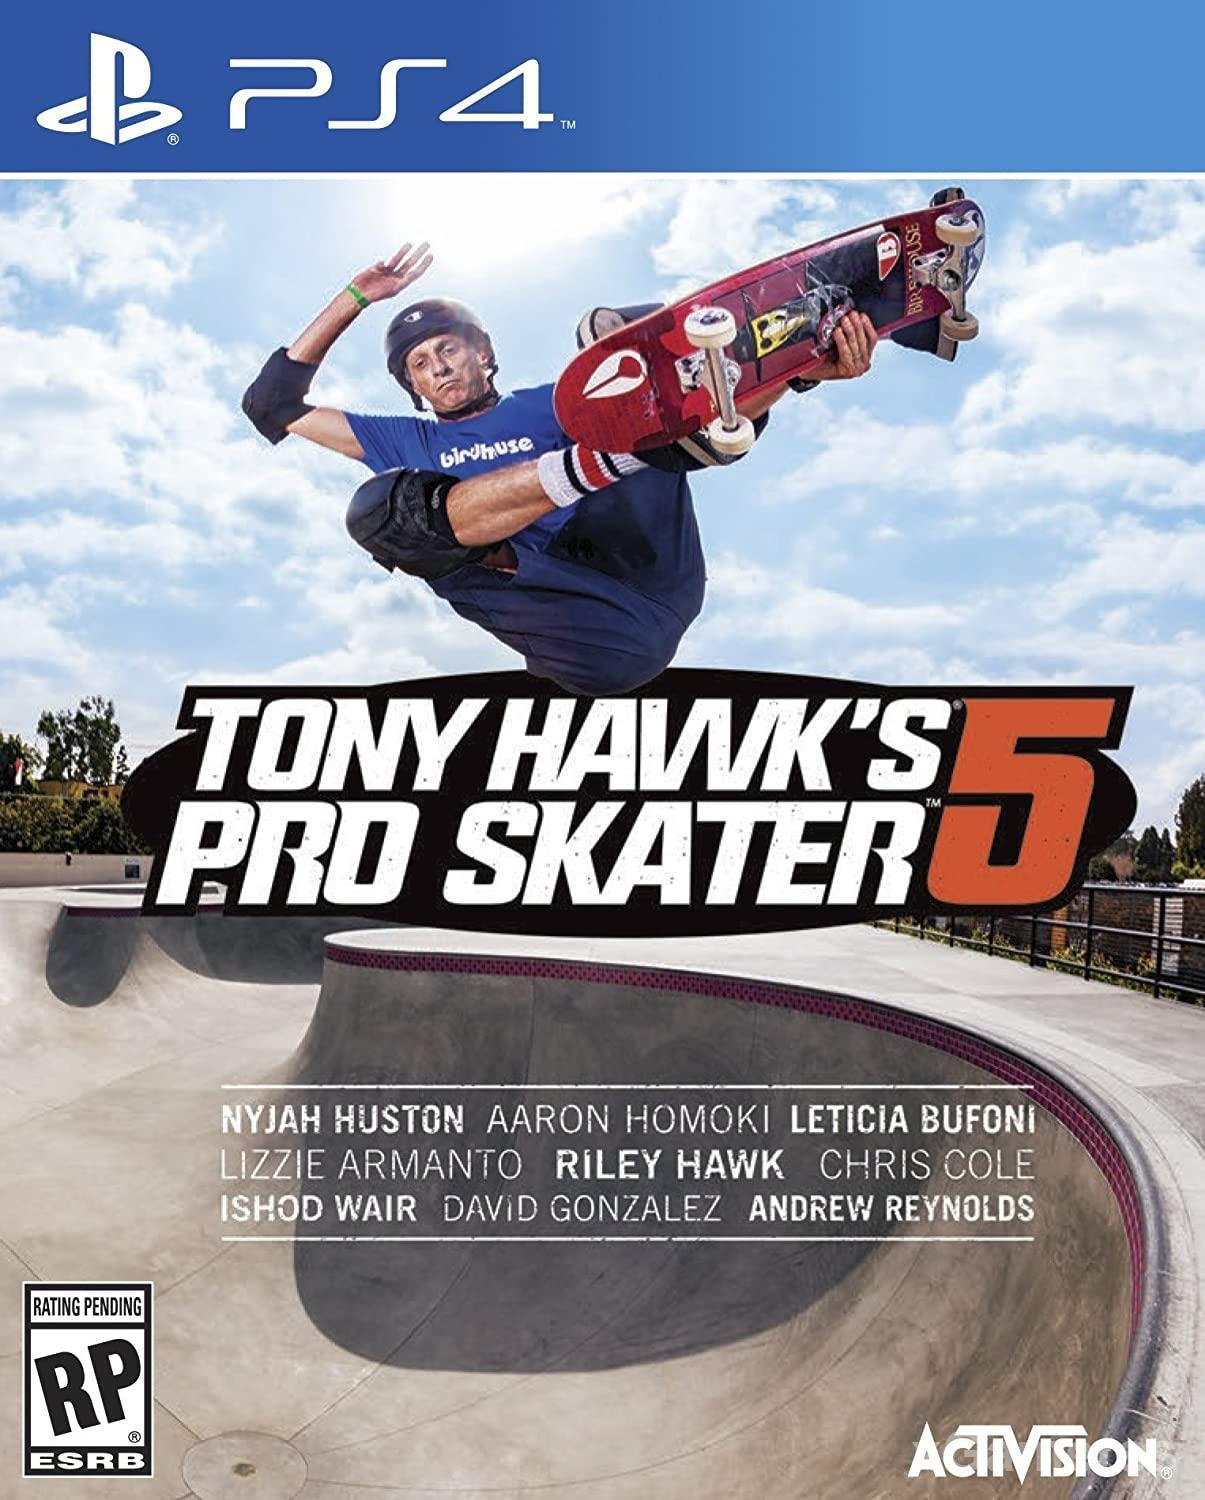 Tony Hawk s Pro Skater 5 - has incredible graphics and impressive gameplay